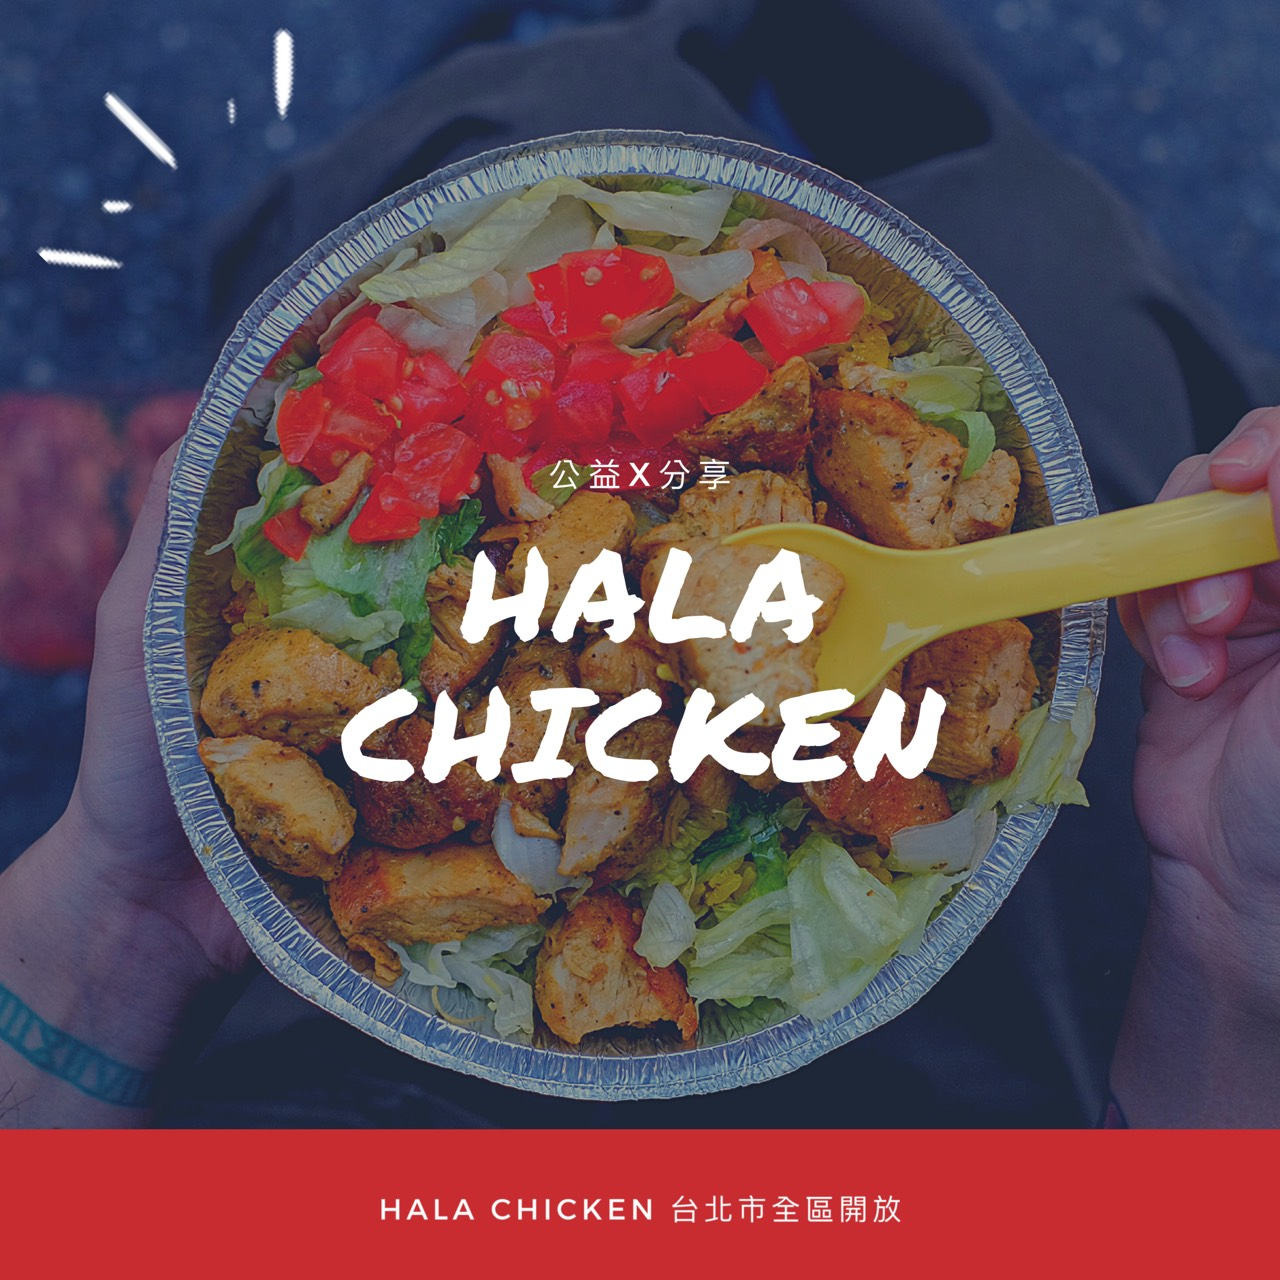 Hala Chicken 訂購須知